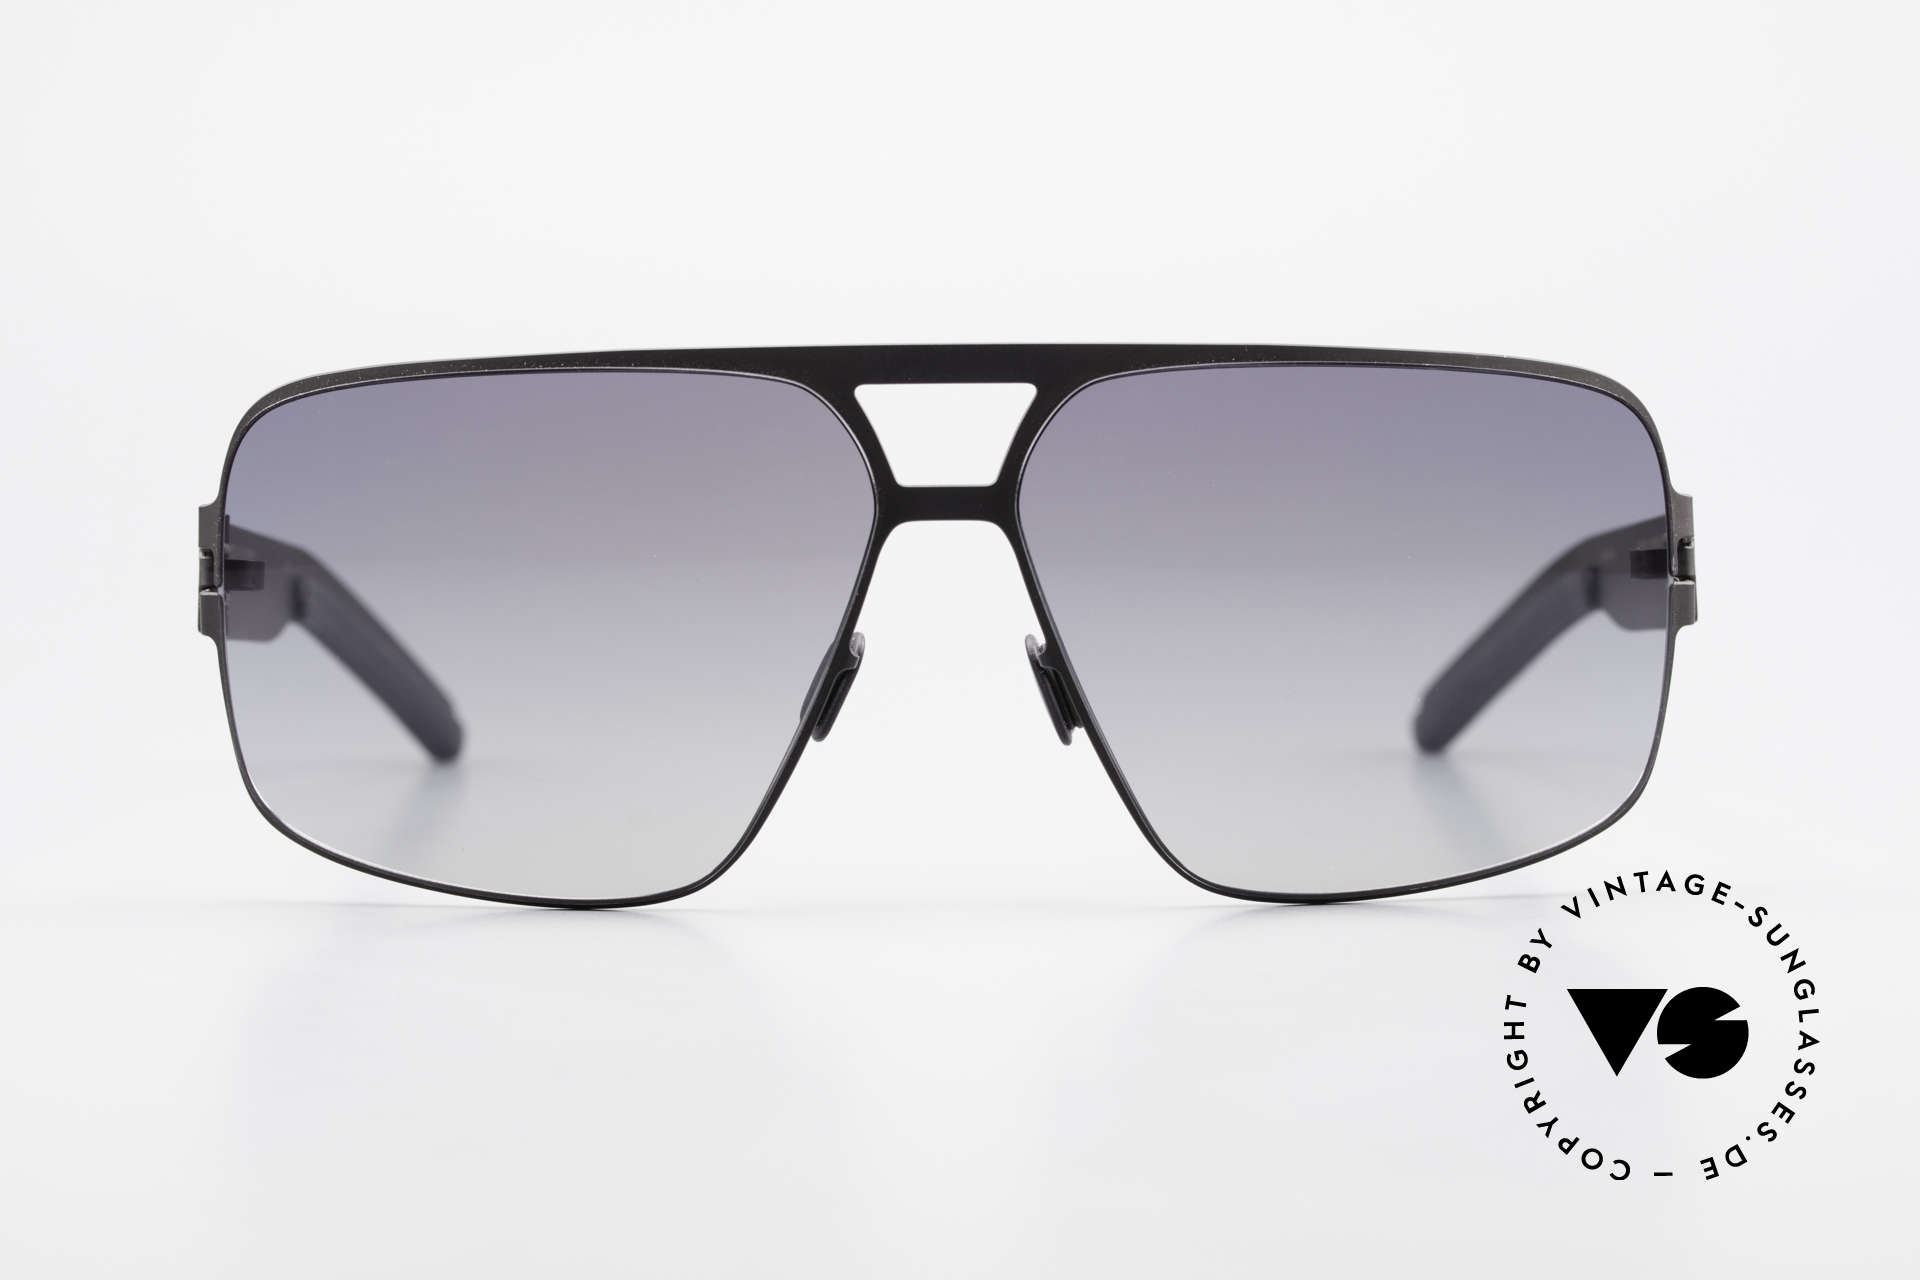 Mykita Tyrone Mykita Vintage Frame From 2011, MYKITA: the youngest brand in our vintage collection, Made for Men